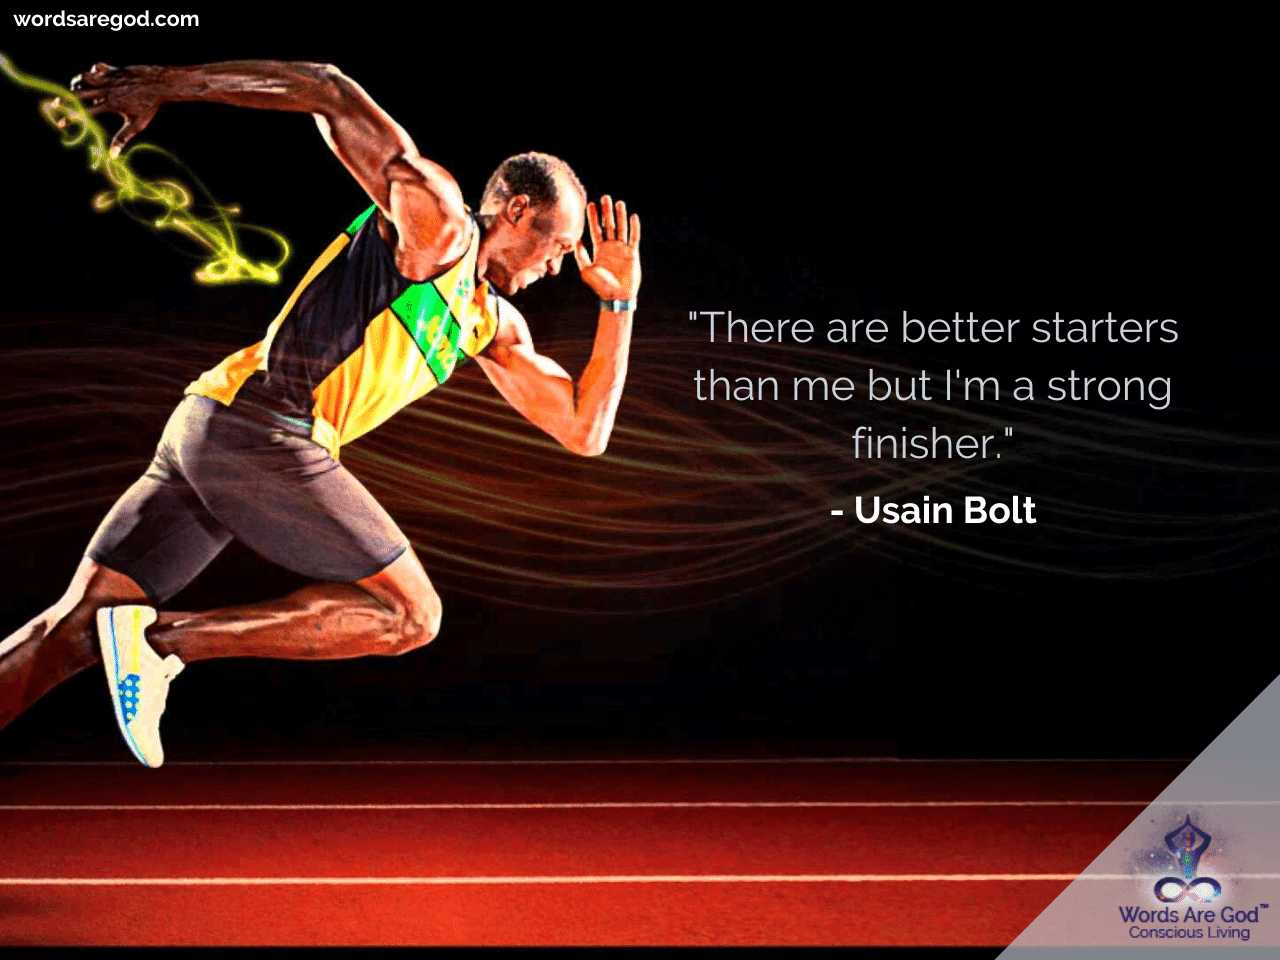 Usain Bolt Quotes Life Quotes Best Inspirational Quotes About Love Love Quotes About Her Positive Quotes